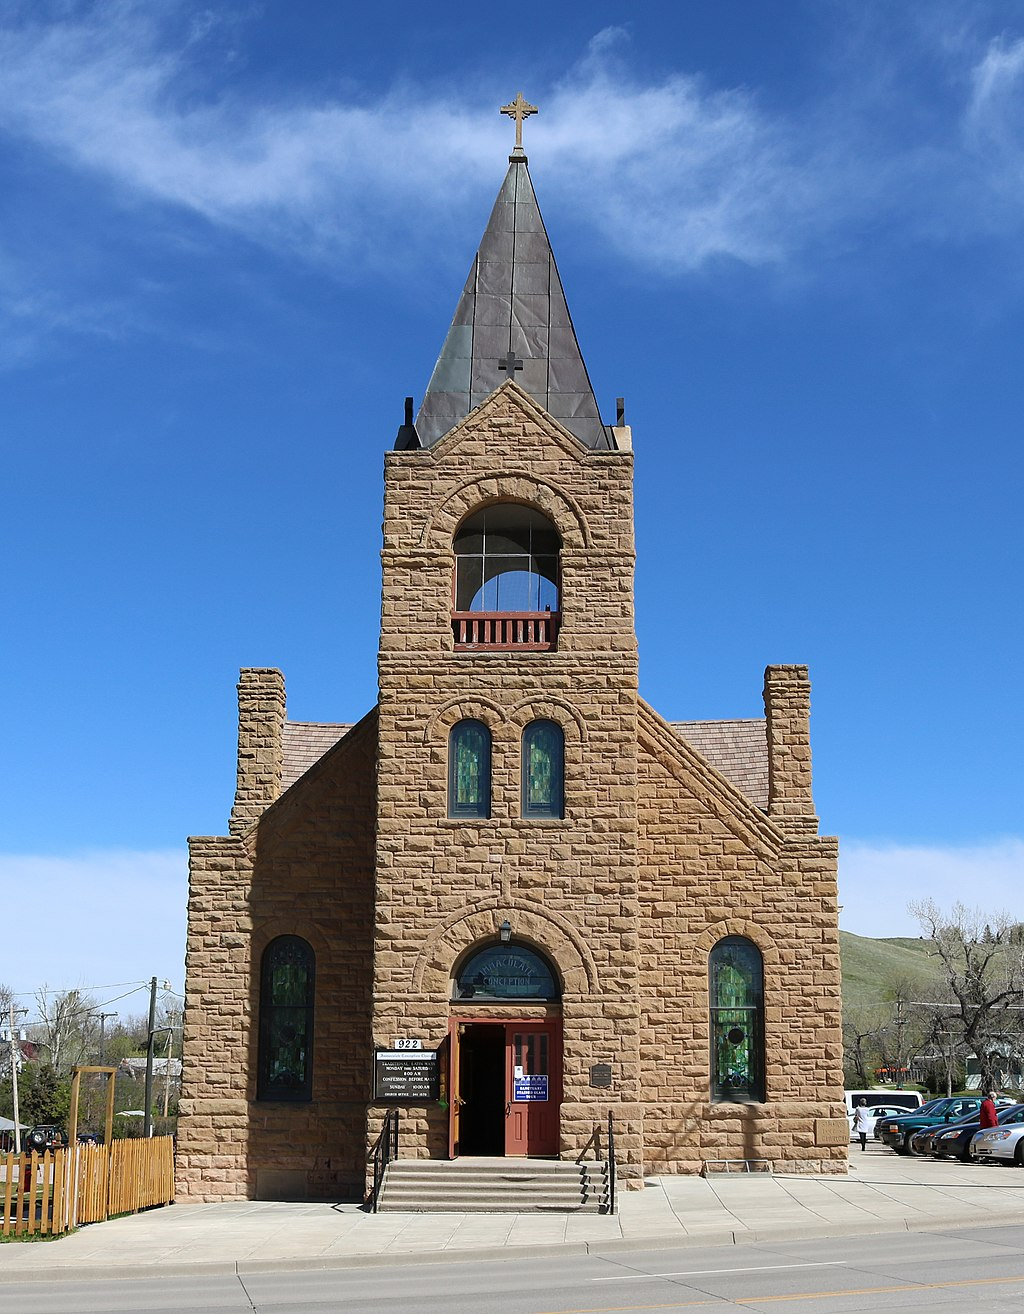 The Chapel of the Immaculate Conception was built in 1911 and was at one time the cathedral for the Diocese of Rapid City.